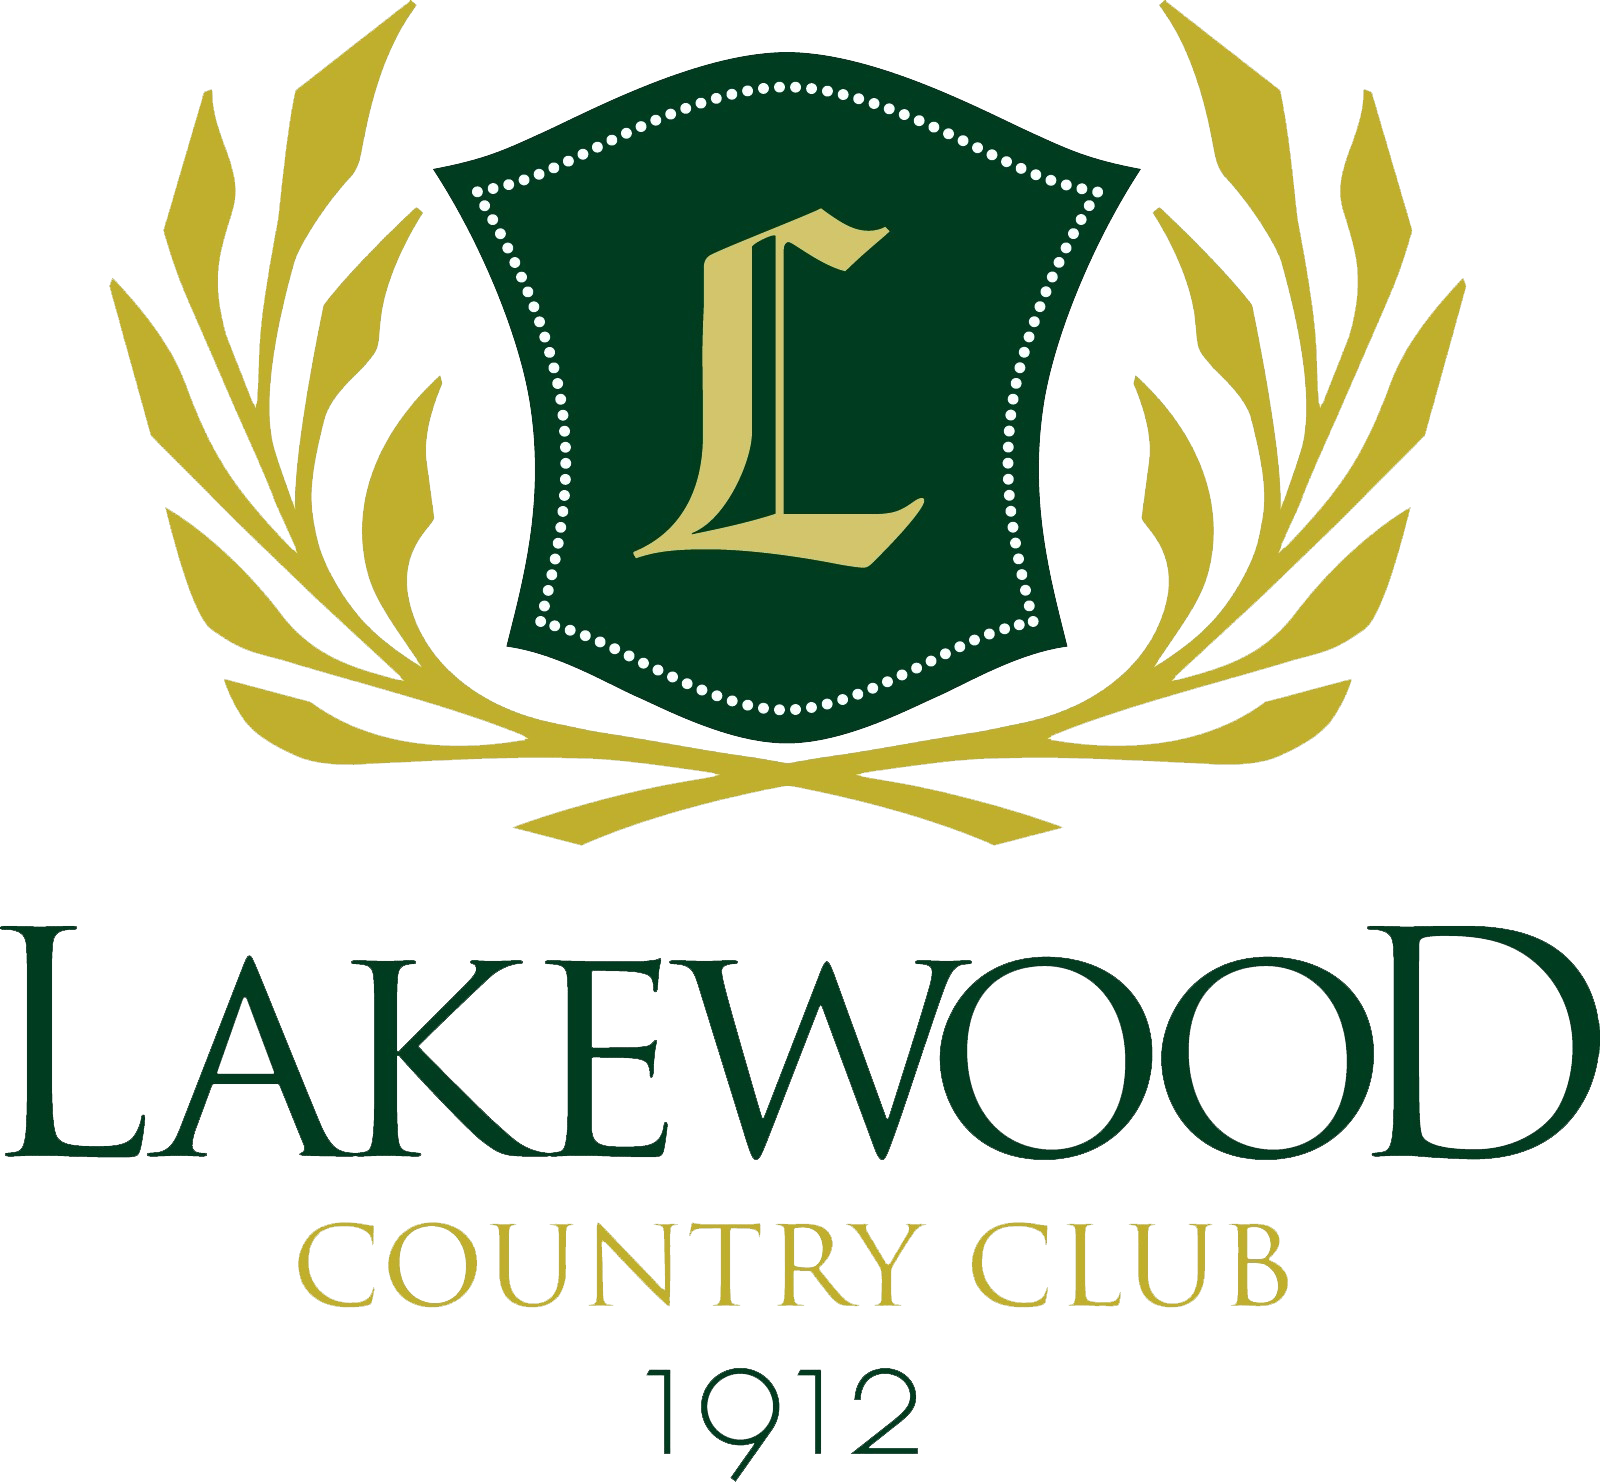 Country club png. Scholarship program lakewood applications